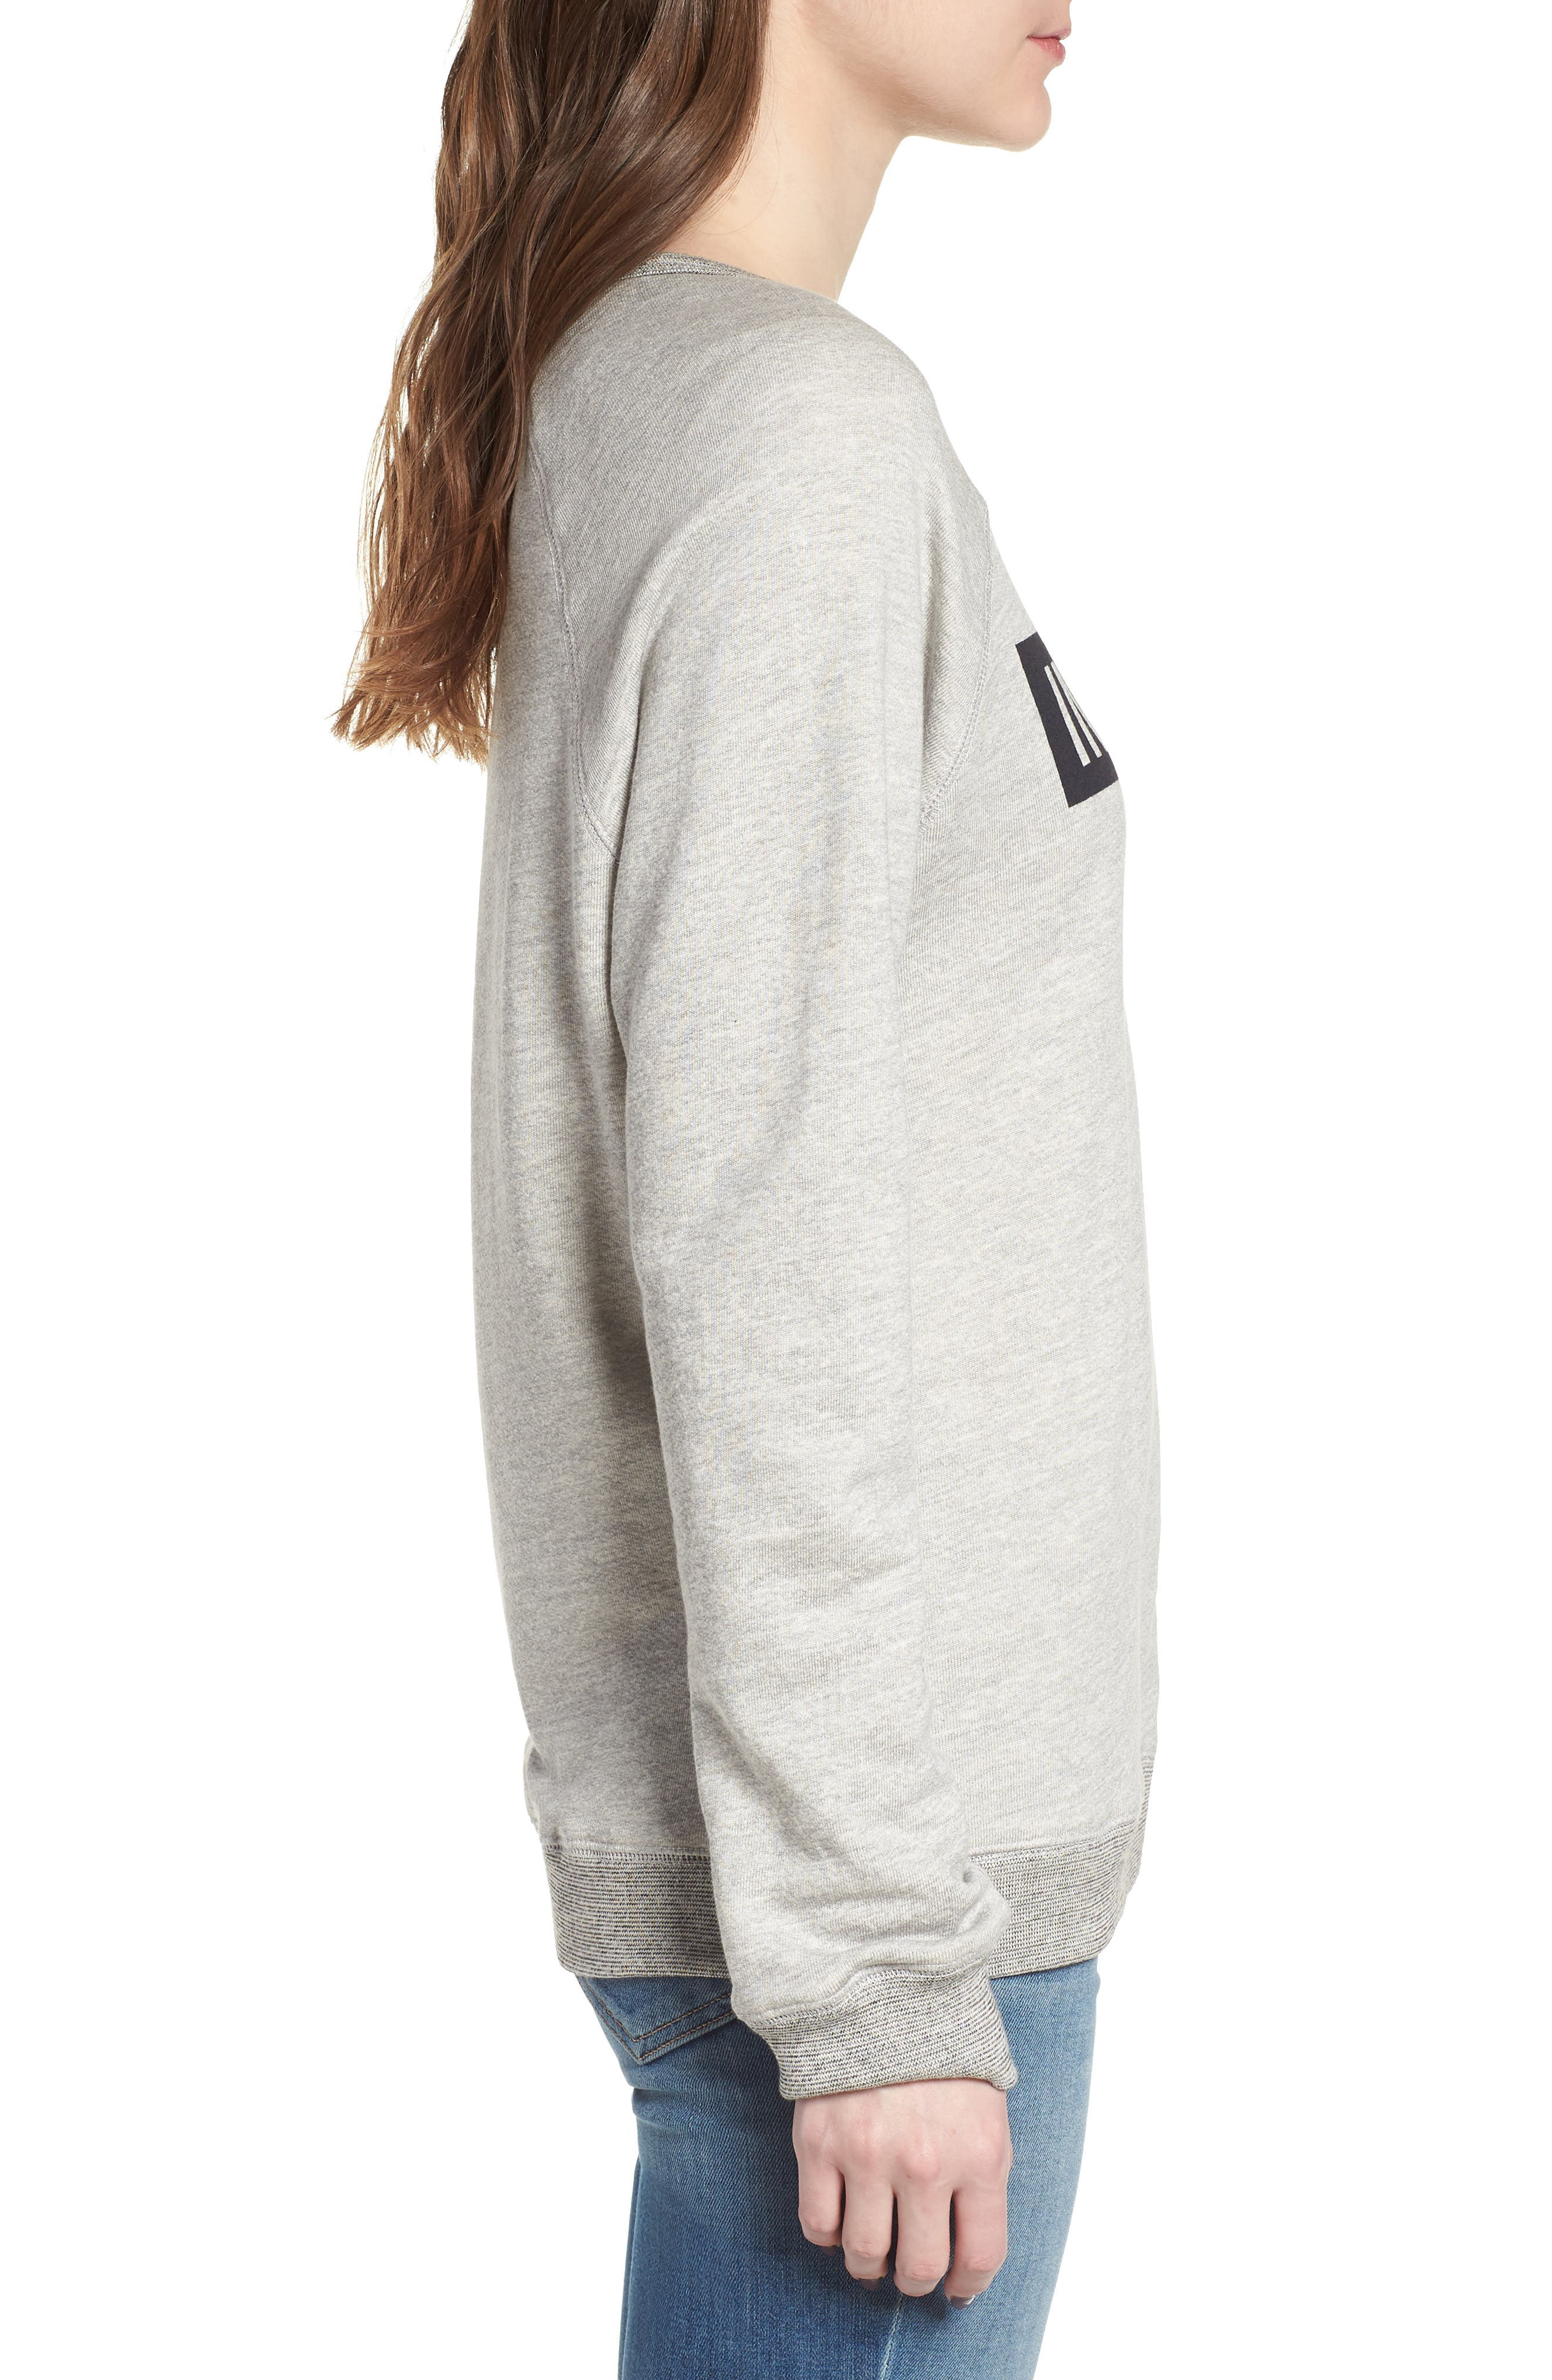 Influencer Sweatshirt,                             Alternate thumbnail 3, color,                             Heather Grey